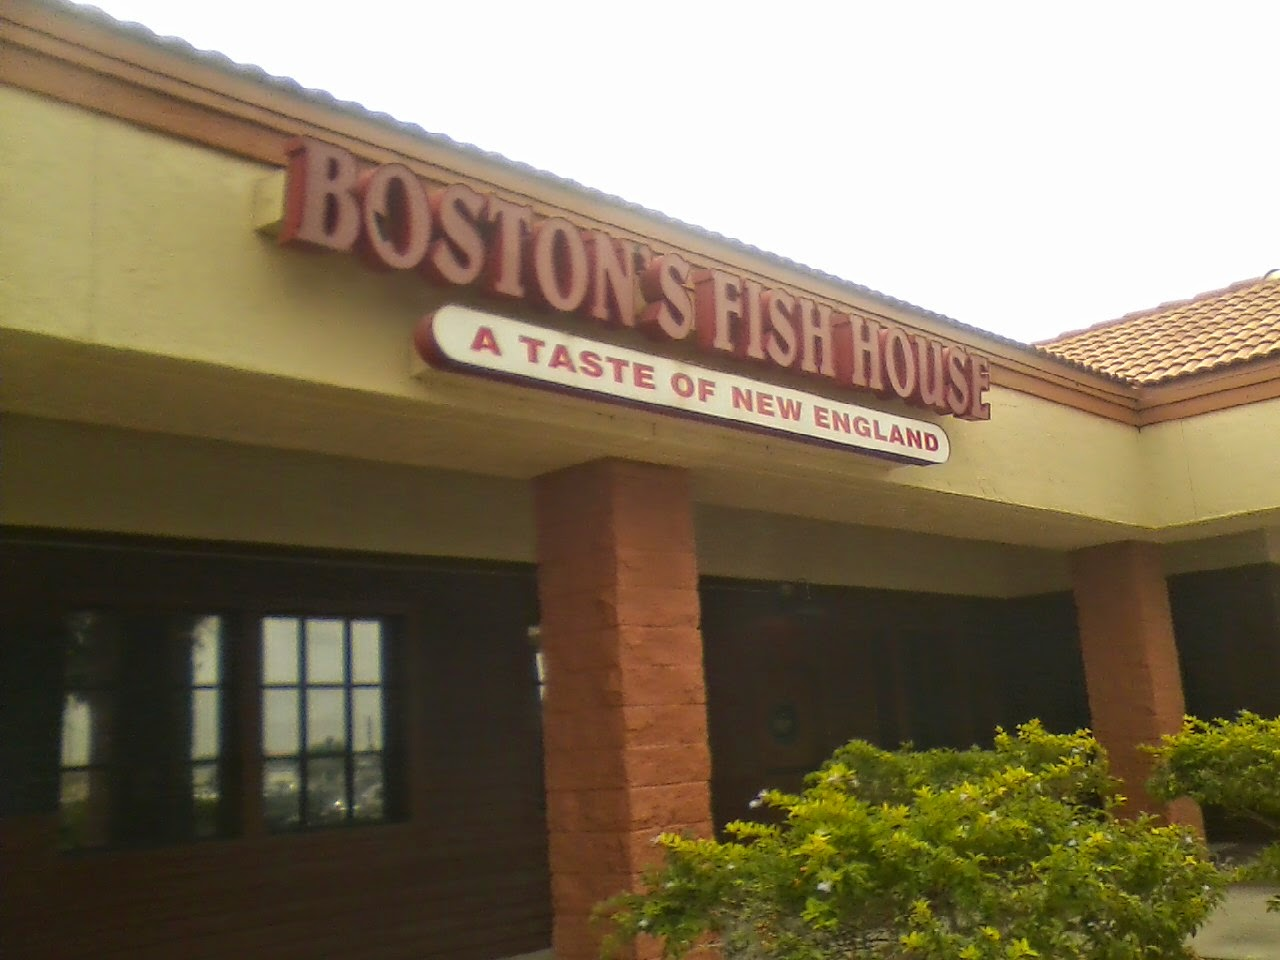 Report from the florida zone boston 39 s fish house for Boston fish house